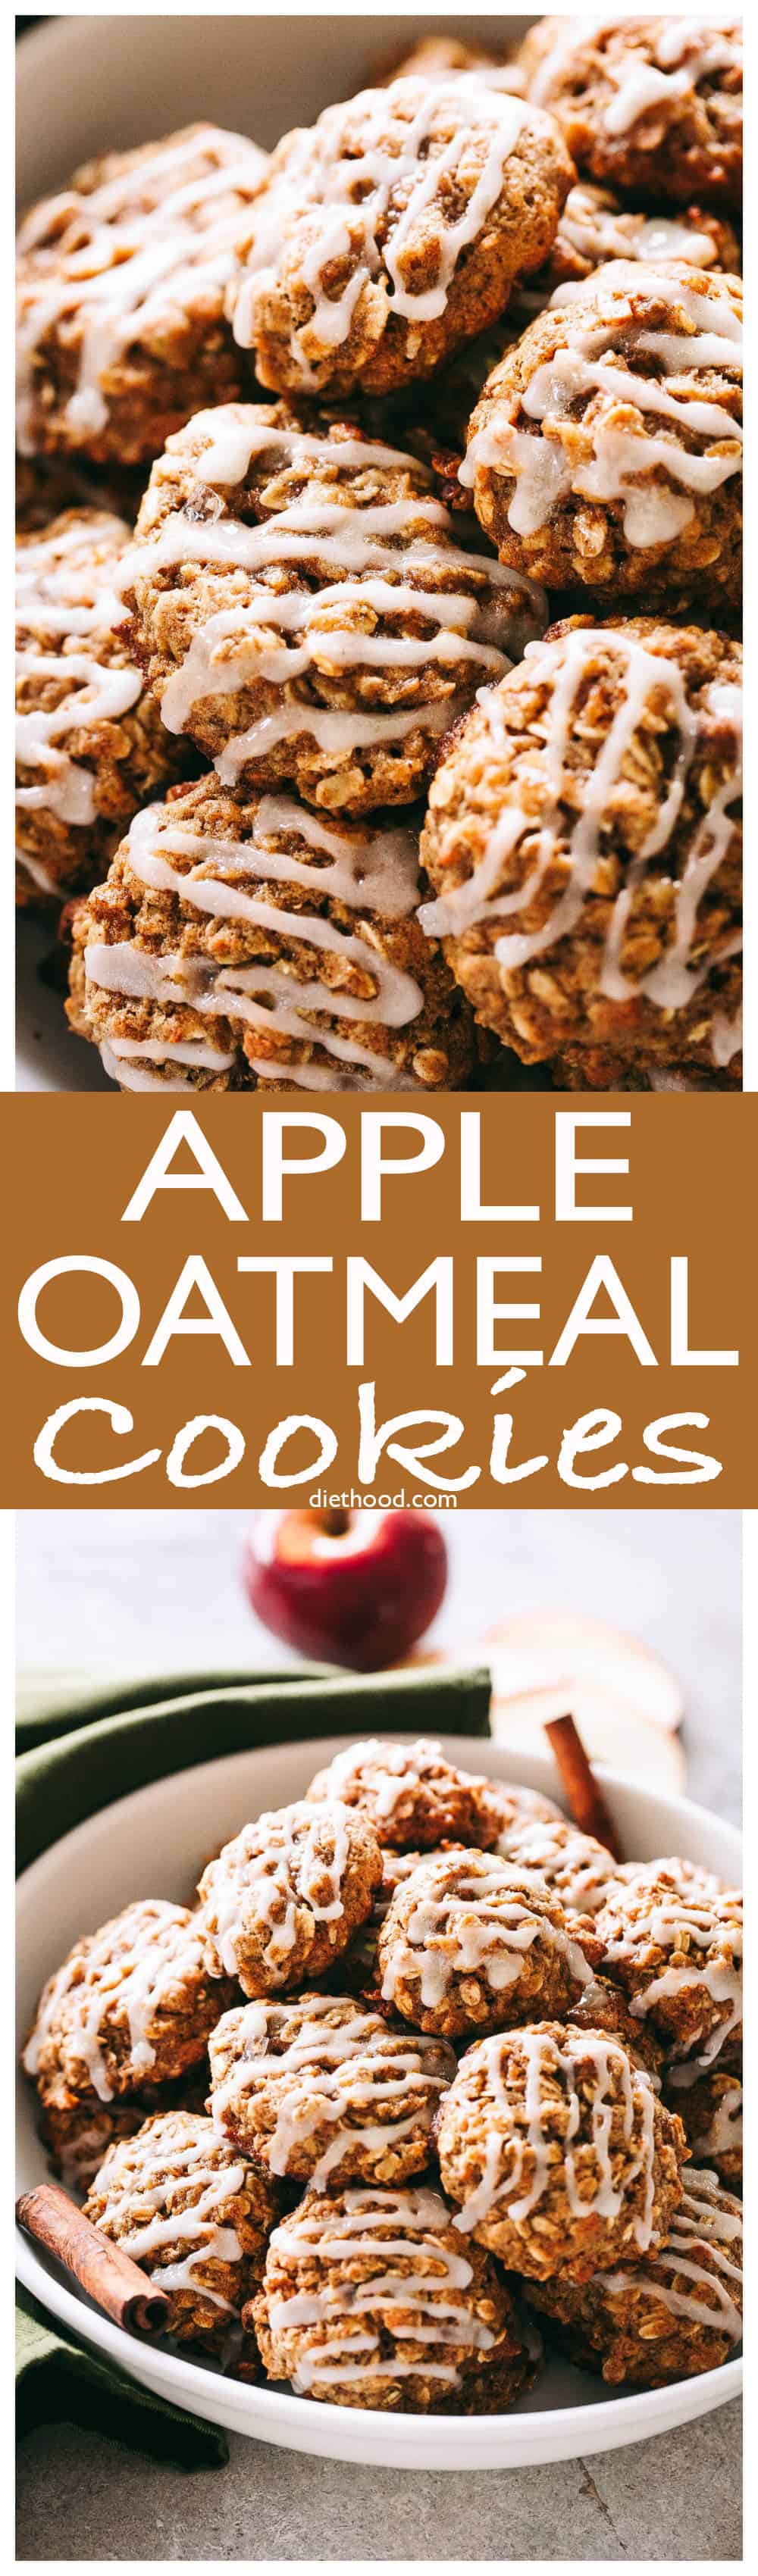 Apple Oatmeal Cookies - These perfectly soft and chewy oatmeal cookies are loaded with apples, oats, and cinnamon, and are topped with a simple sweet glaze. #cookies #oatmeal #christmas